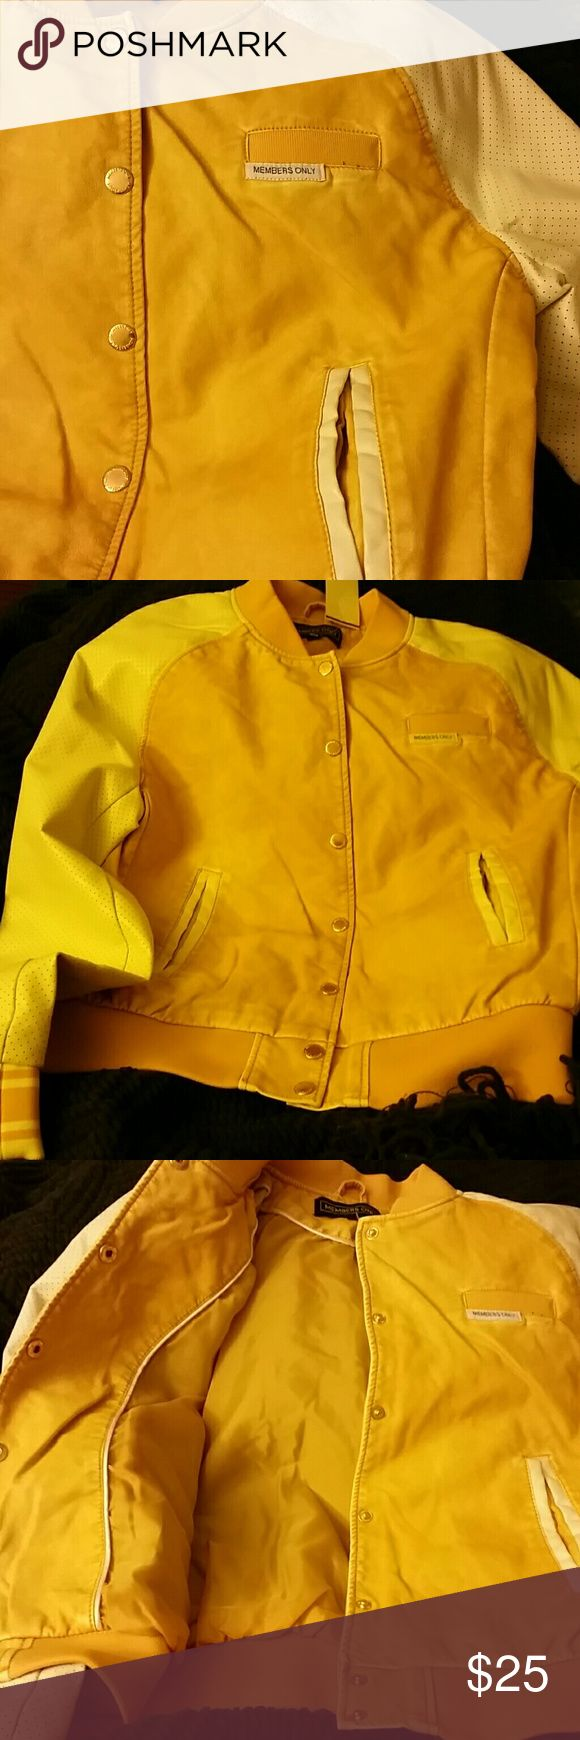 Members Only Jacket in Cream and Yellow:-).... A SUPER Cute Members Only Jacket in Cream and Yellow..Faux Super soft  leather Jacket in a Junior*s size M..a classic jacket with a Pop! Cute for Spring! Members Only Jackets & Coats Jean Jackets